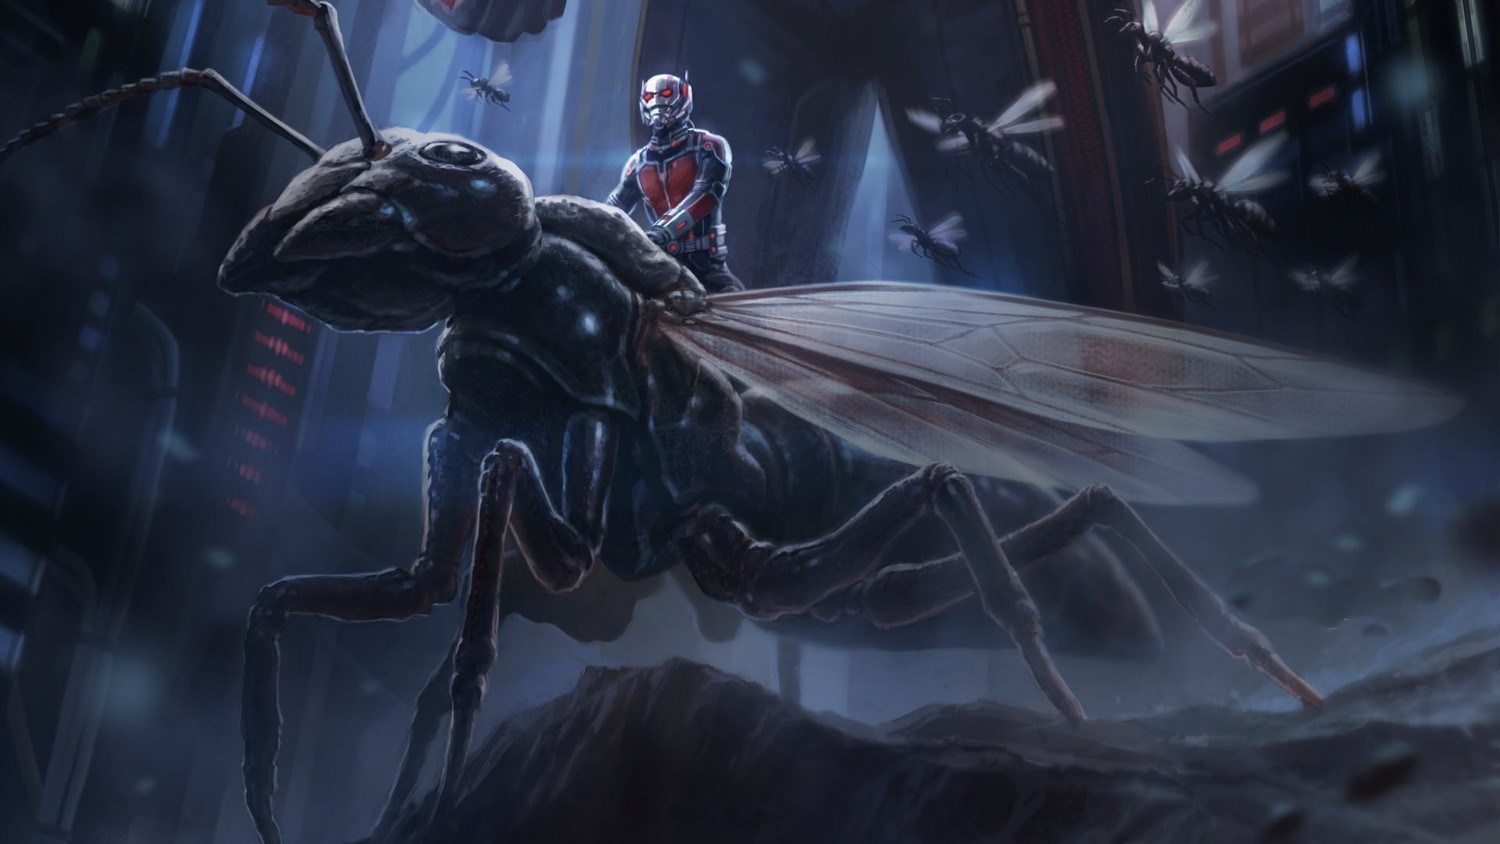 ant_man_poster_0